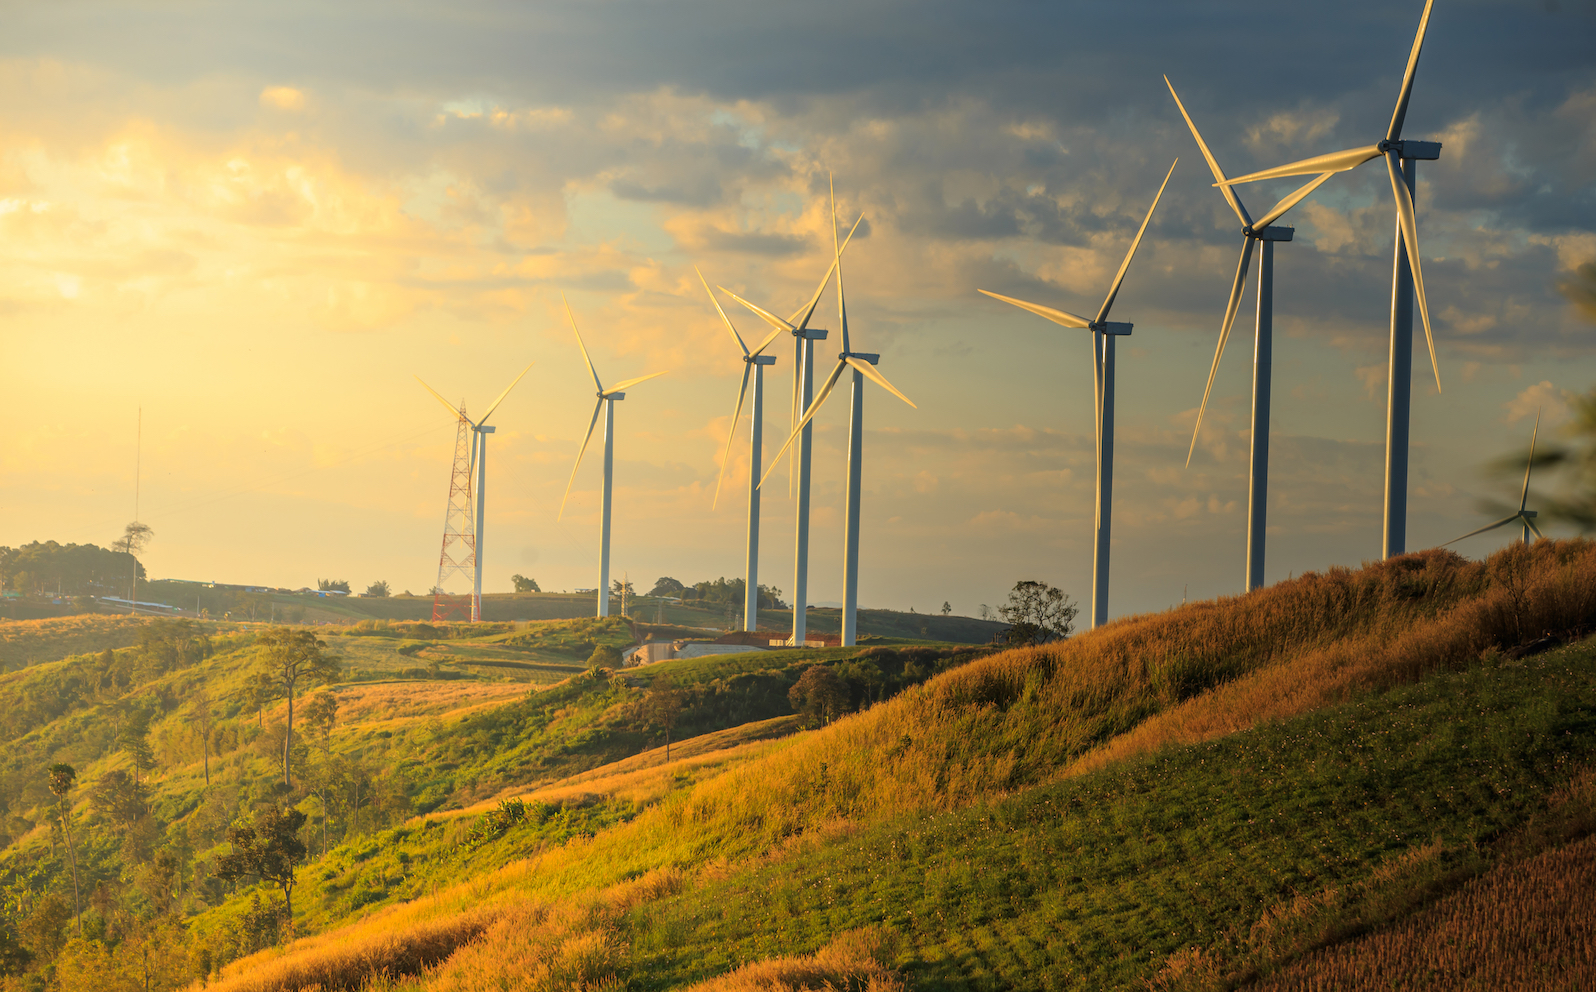 Research from the University of Colorado at Boulder predicts a major shift in wind energy over the next century due to climate change.